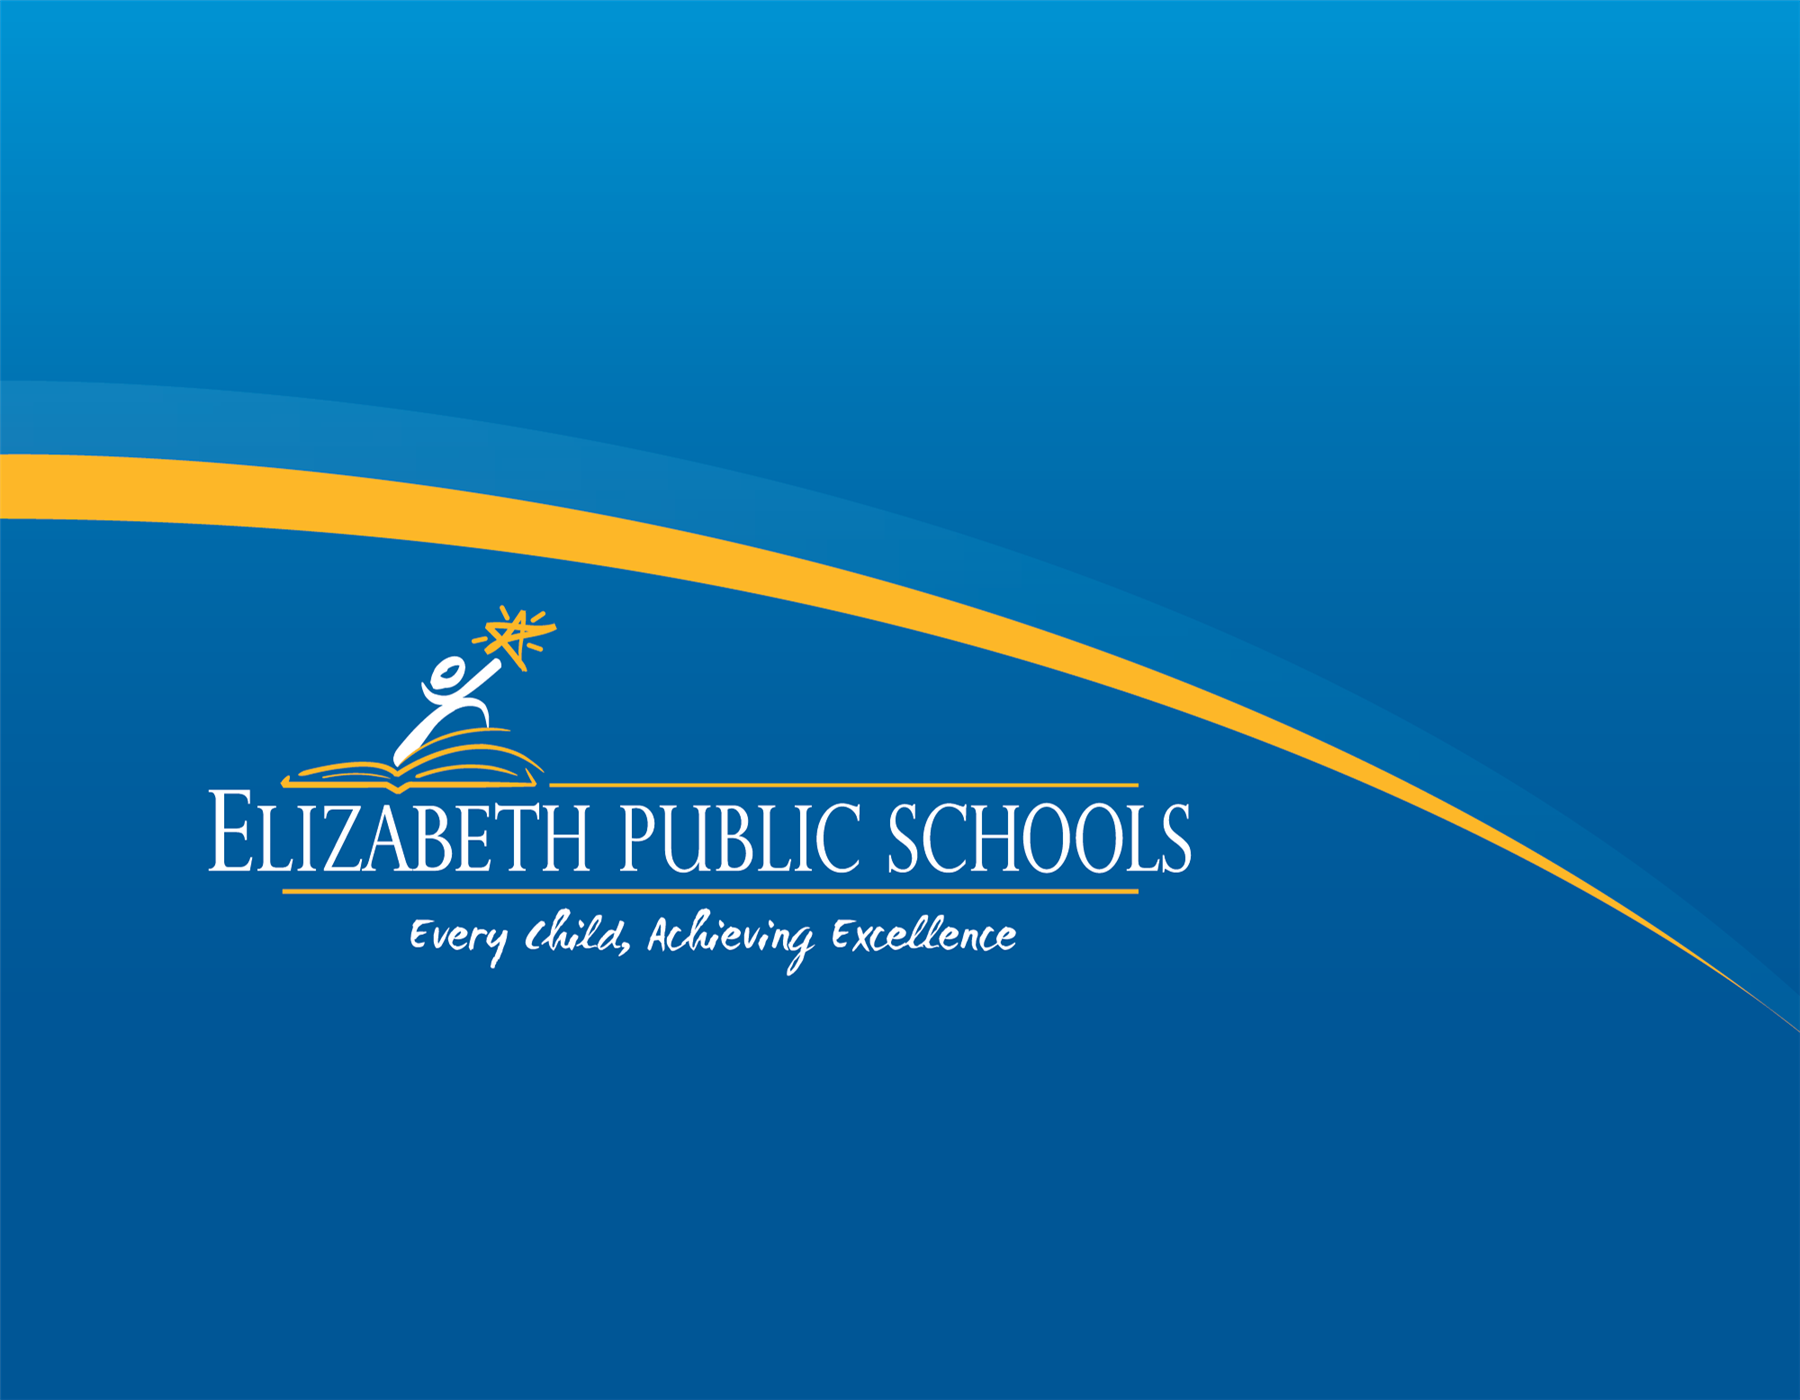 Elizabeth Schools Announce New Measures for Even Safer Schools